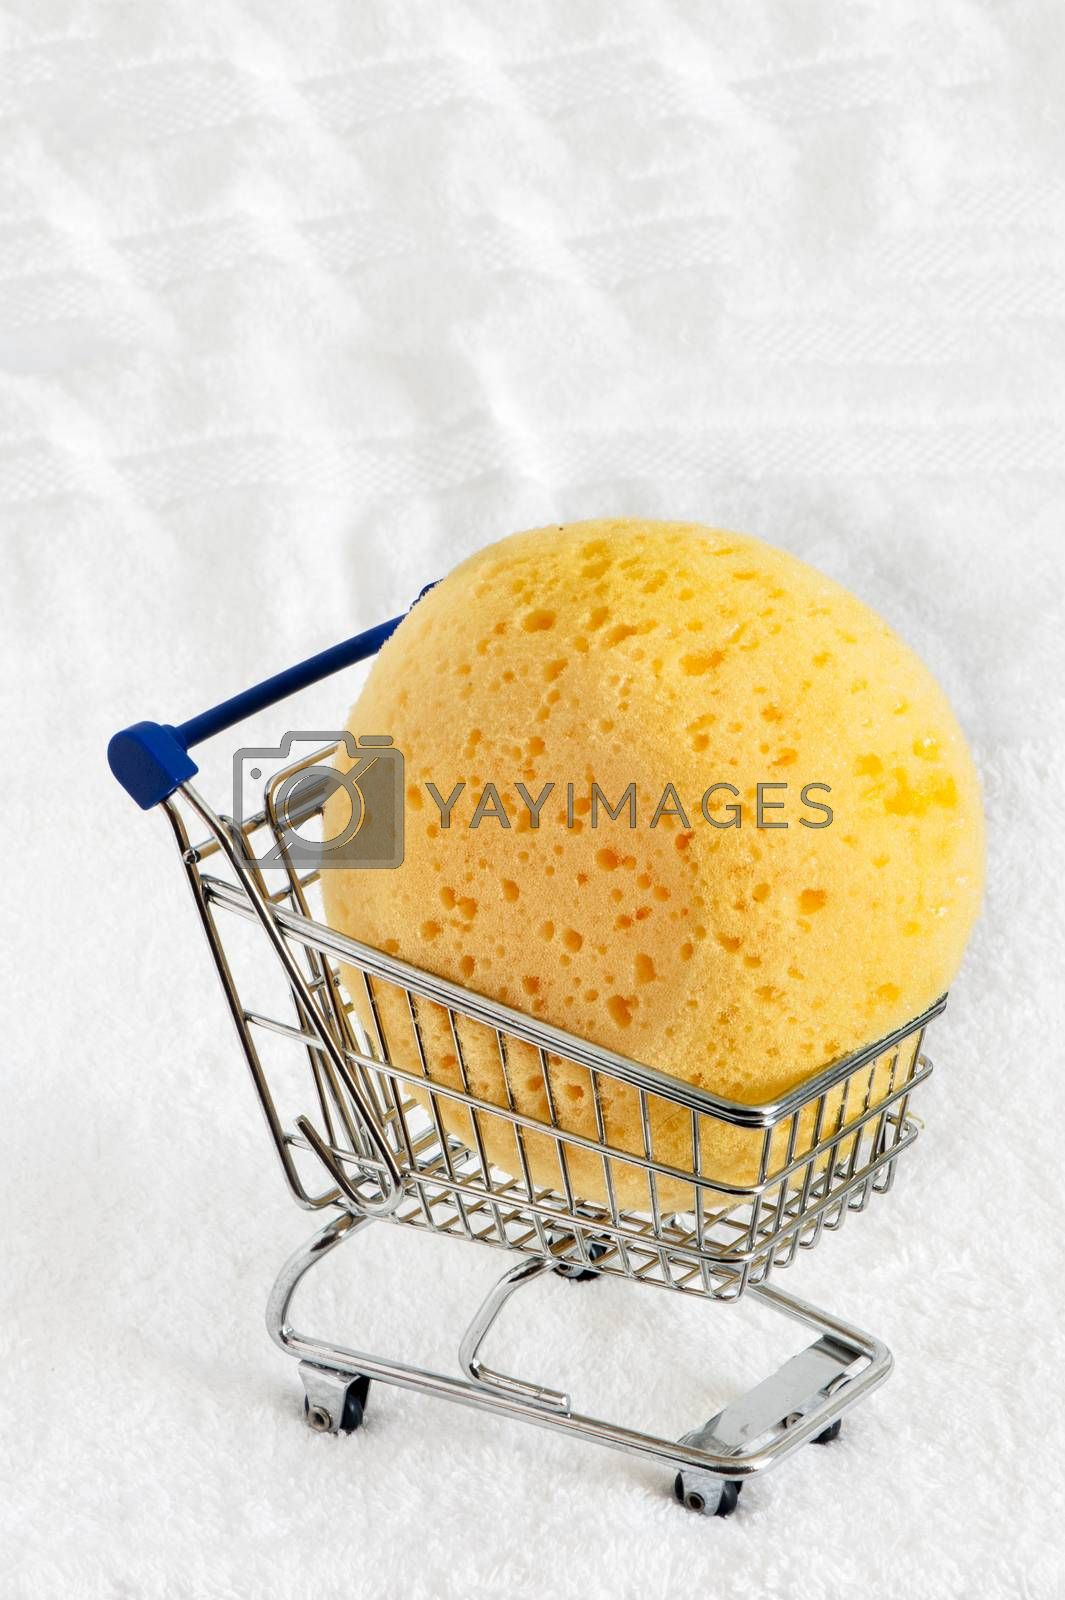 a yellow  sponge  on a  white background